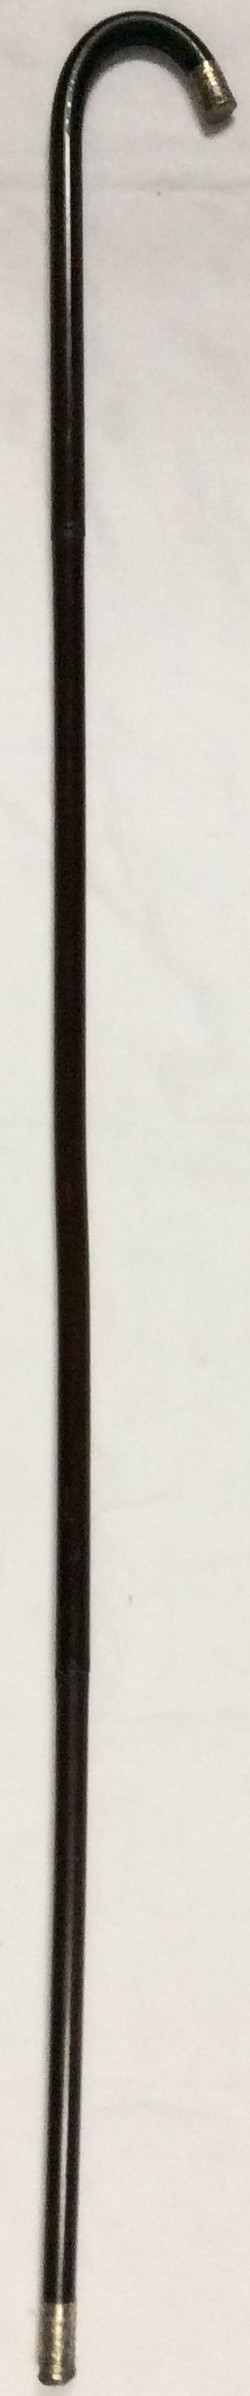 Victorian style wood crook cane